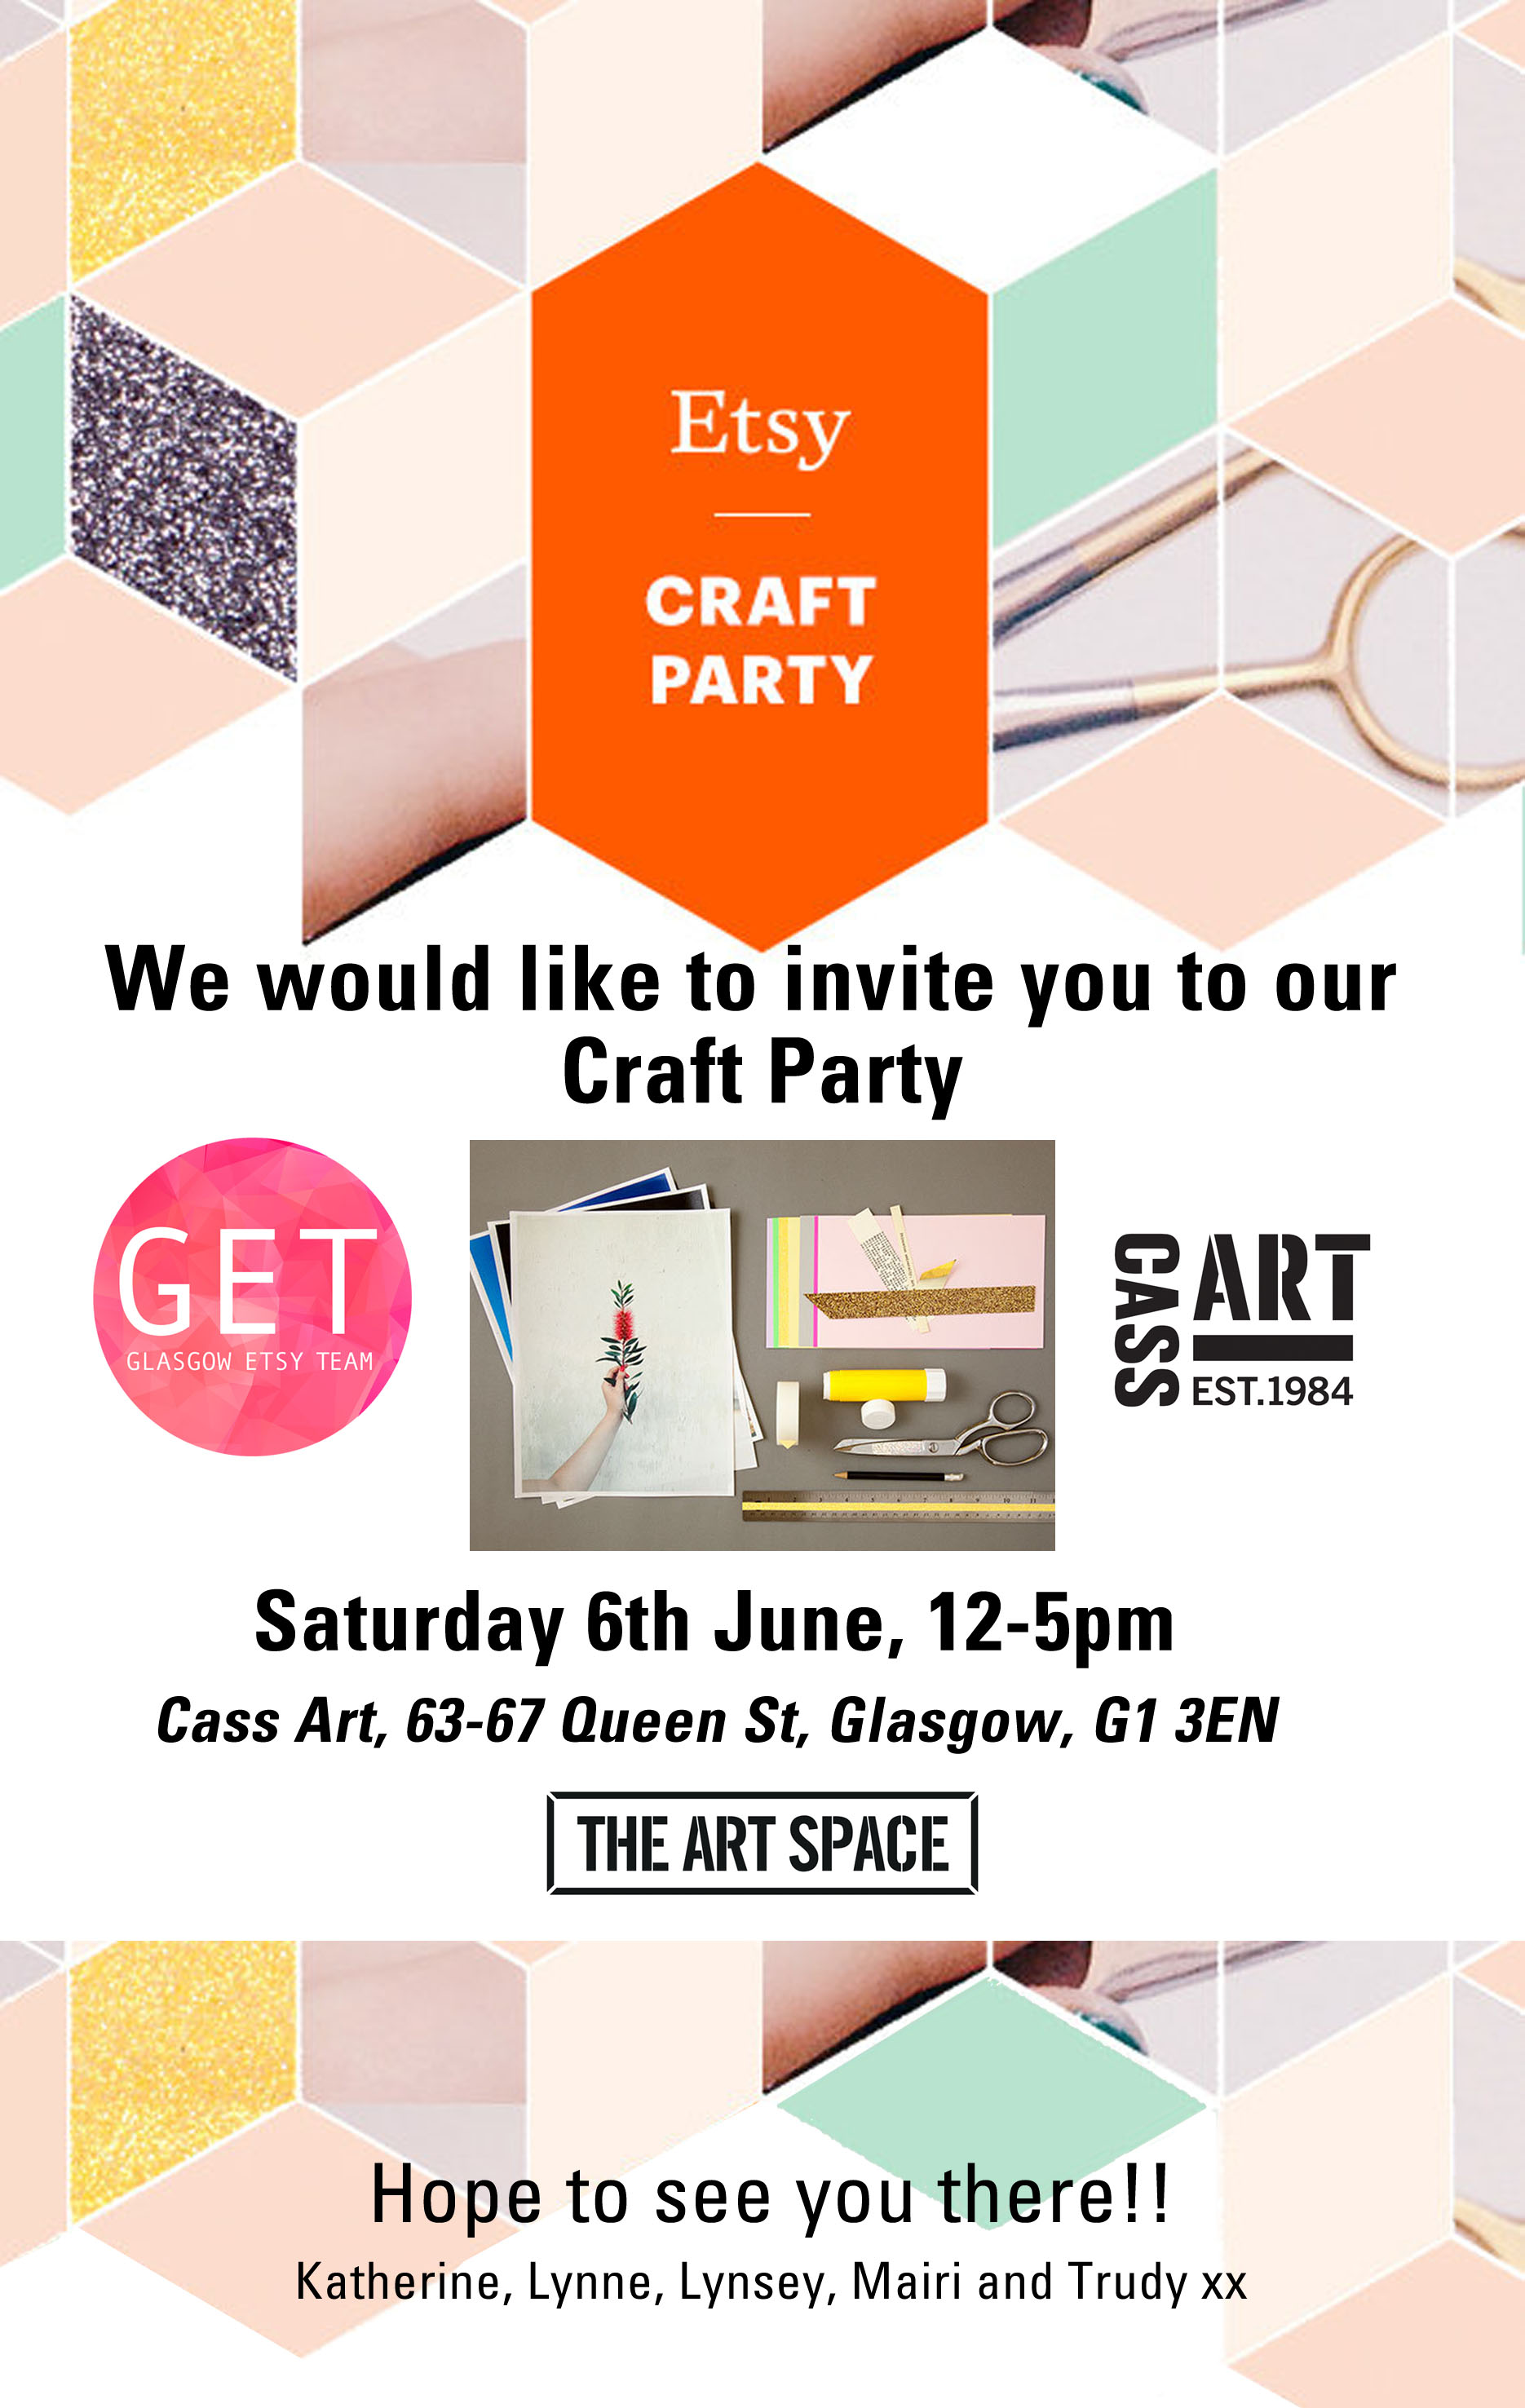 A personal invite to our GET craft party - Glasgow Etsy Team